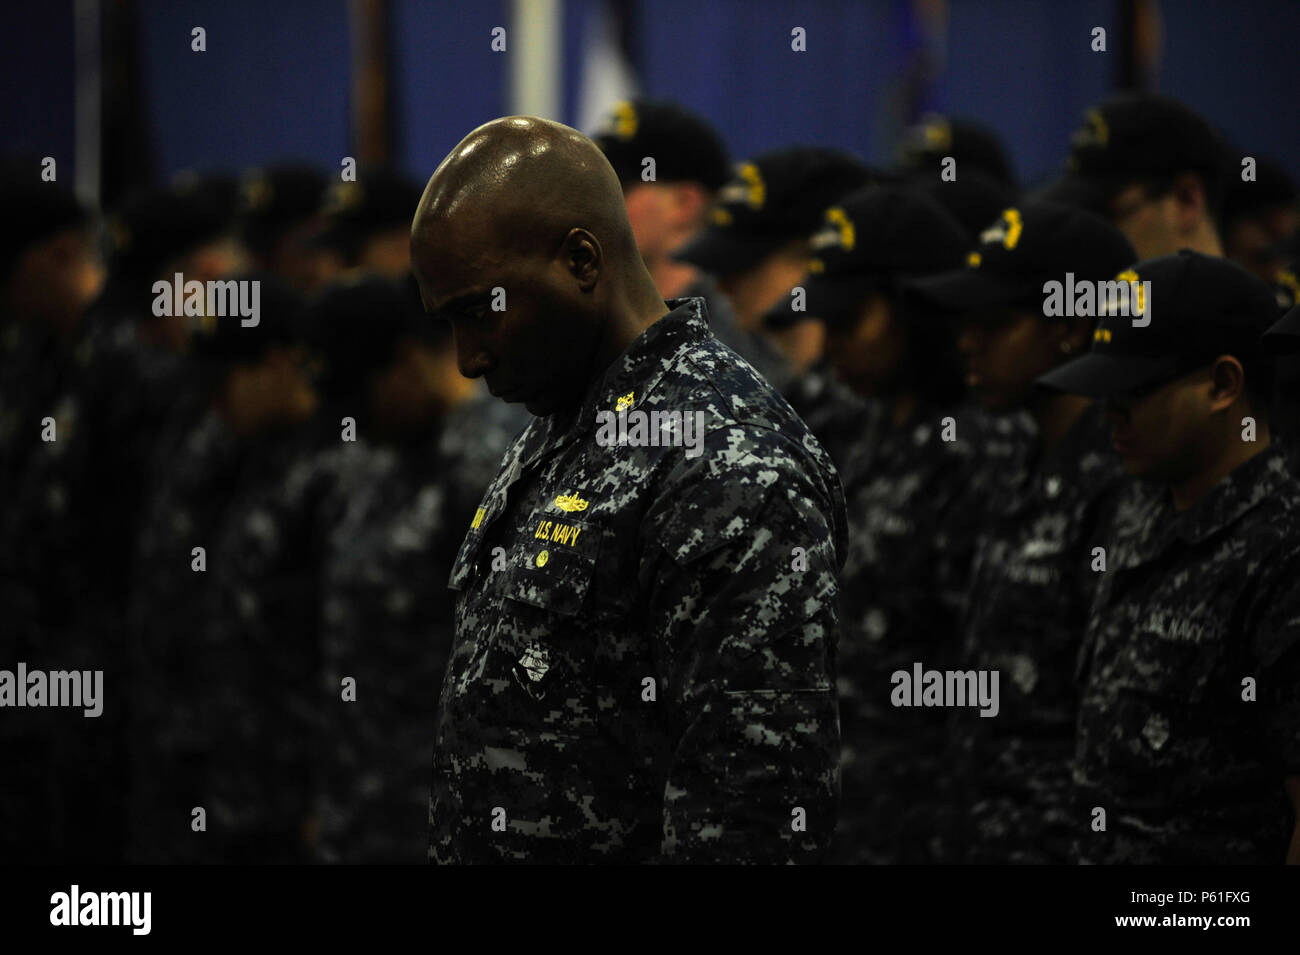 NEWPORT NEWS, Va., (April 8, 2016) Chief Warrant Officer Tony Cochran, the ship's boatswain, bows his head for the benediction during a change of command in Pre-Commissioning Unit Gerald R. Ford's (CVN 78) hangar bay. Ford is the first of a new class of aircraft carriers currently under construction by Huntington Ingalls Newport News Shipbuilding. (U.S. Navy photo by Mass Communication Specialist Seaman Apprentice Connor D. Loessin/Released) - Stock Image